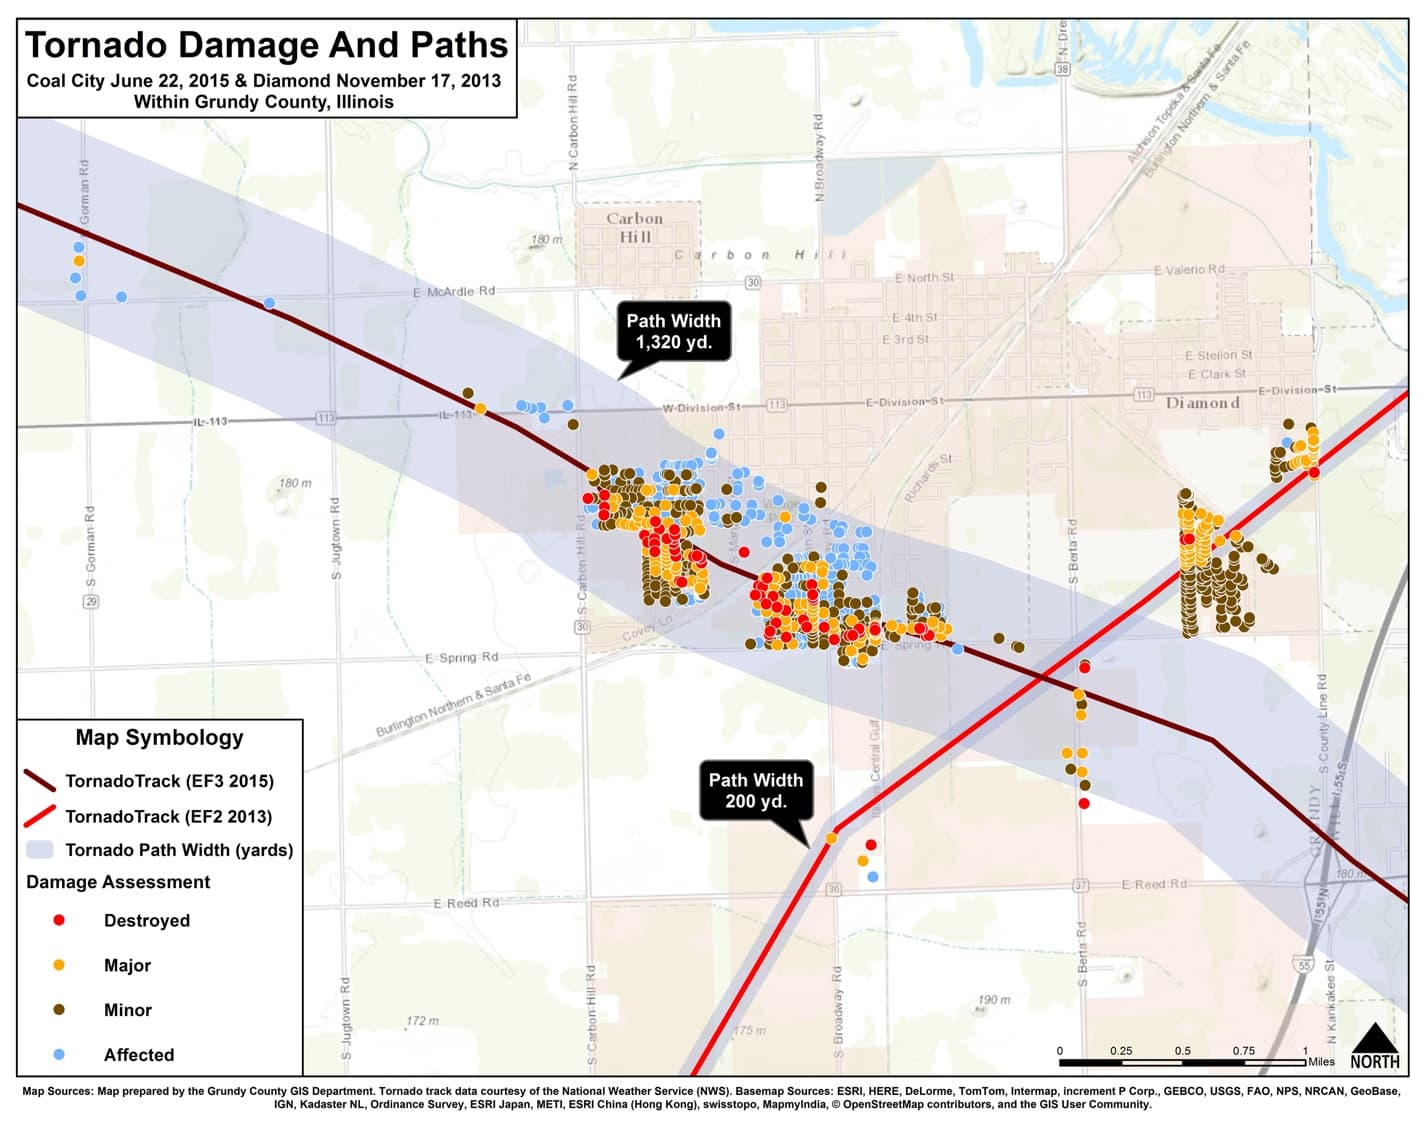 Tornado paths and damage from the Grundy County storms.